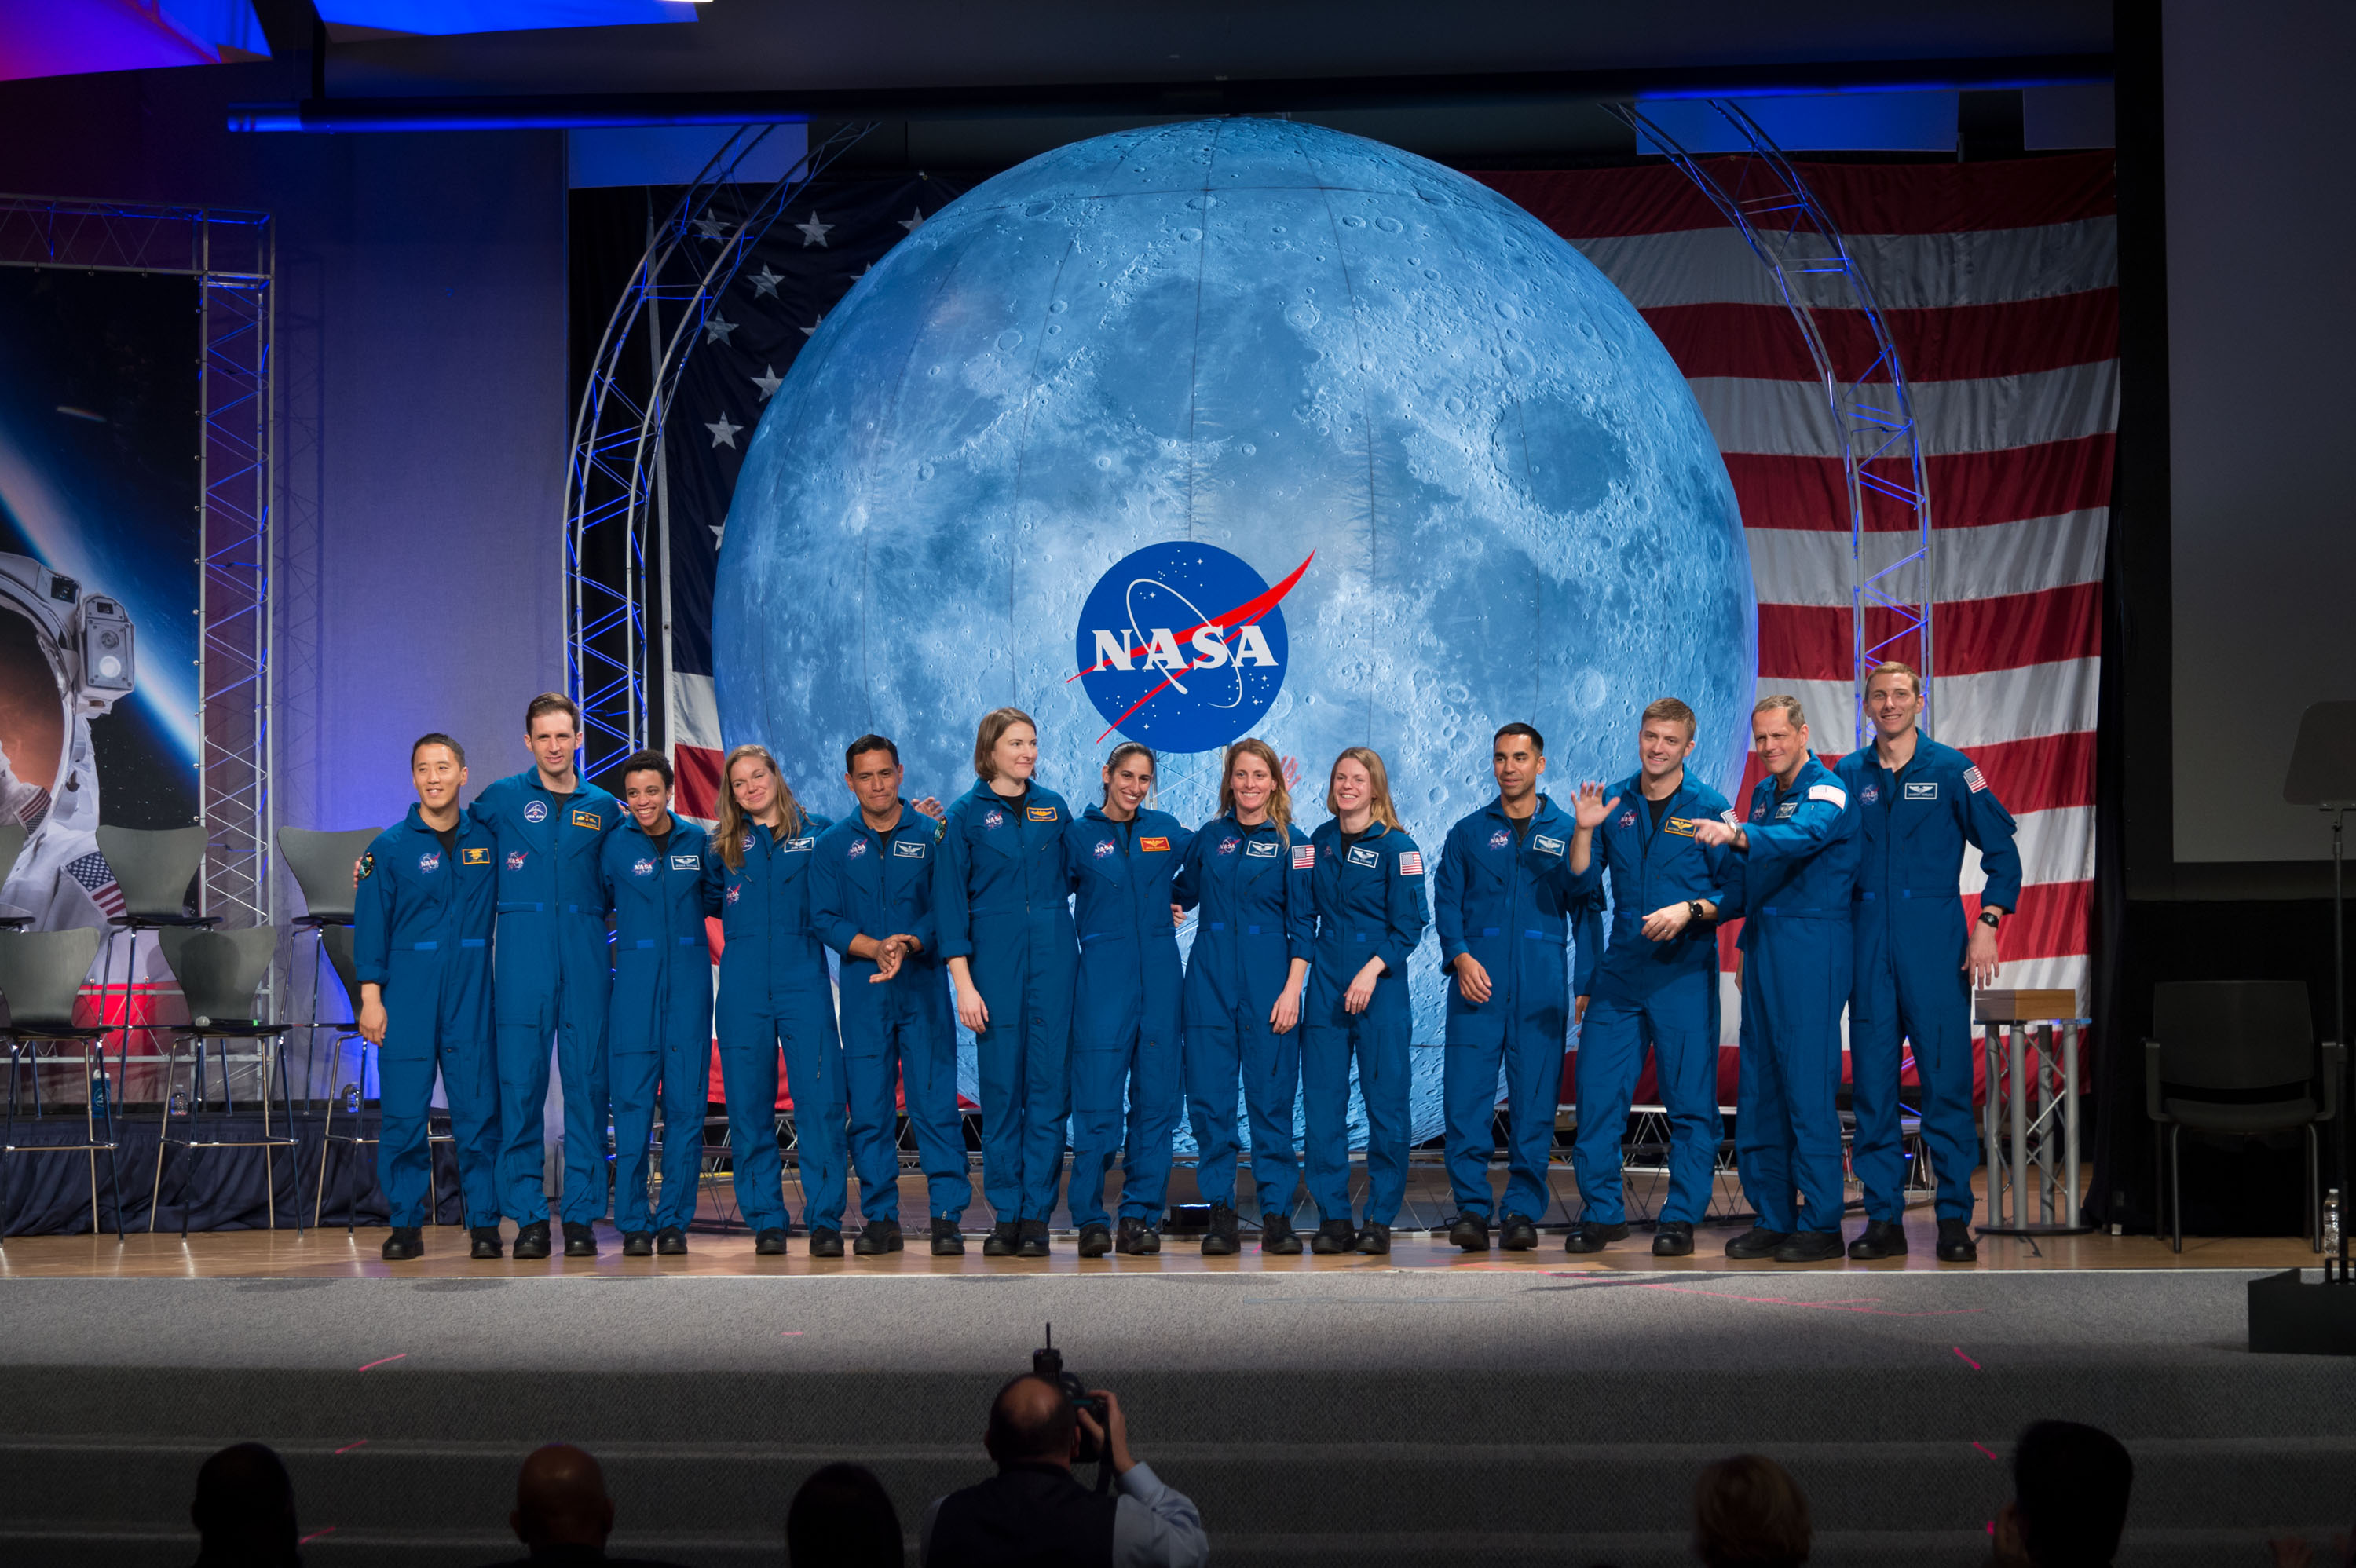 Astronaut Selection Timeline Nasa Pexels — beautiful free photos contributed by our talented community. https www nasa gov image feature astronaut selection timeline